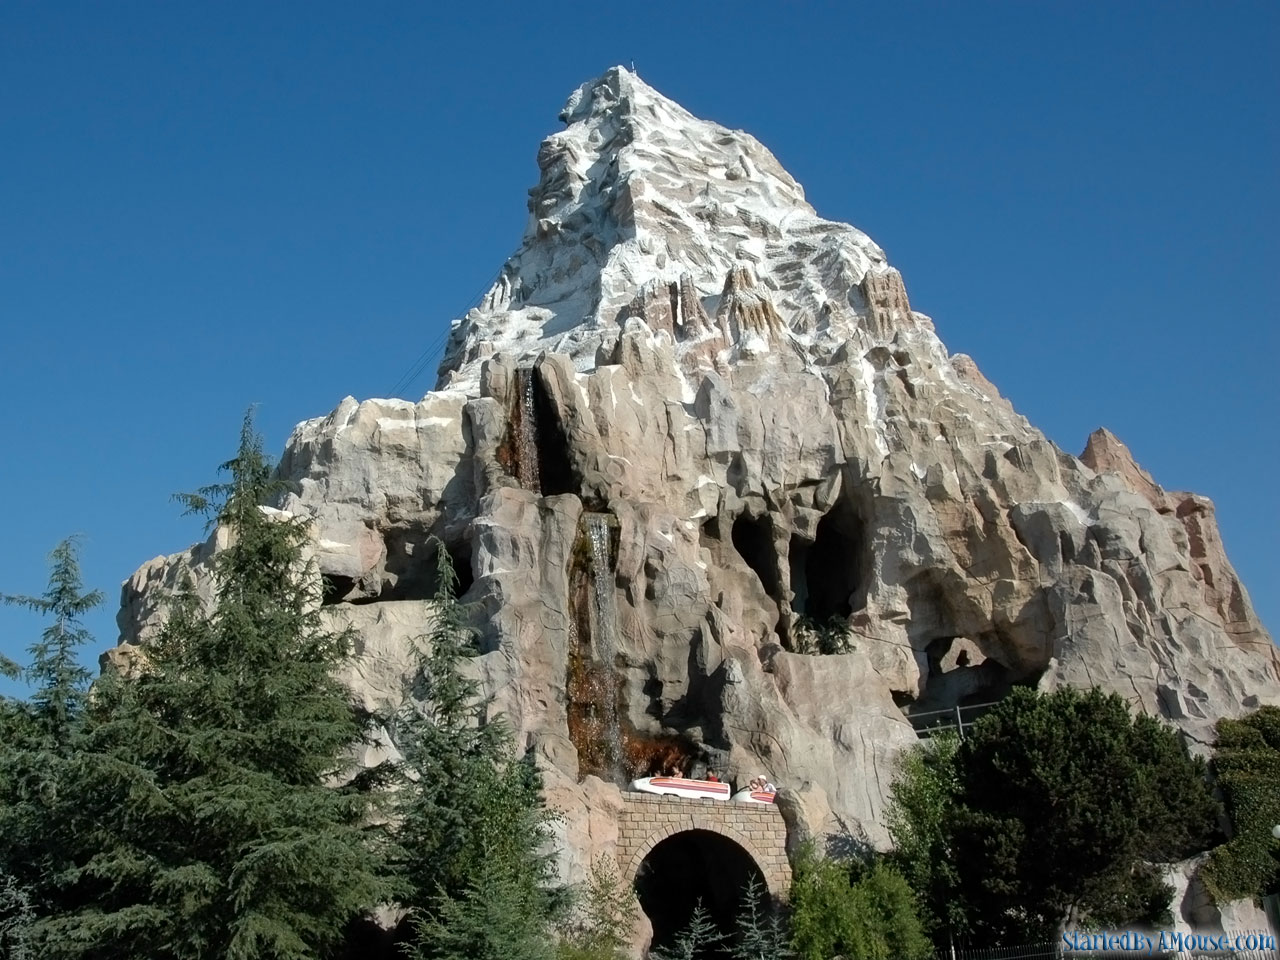 The Best Disneyland Rides To Go On At Night Tips From The Disney